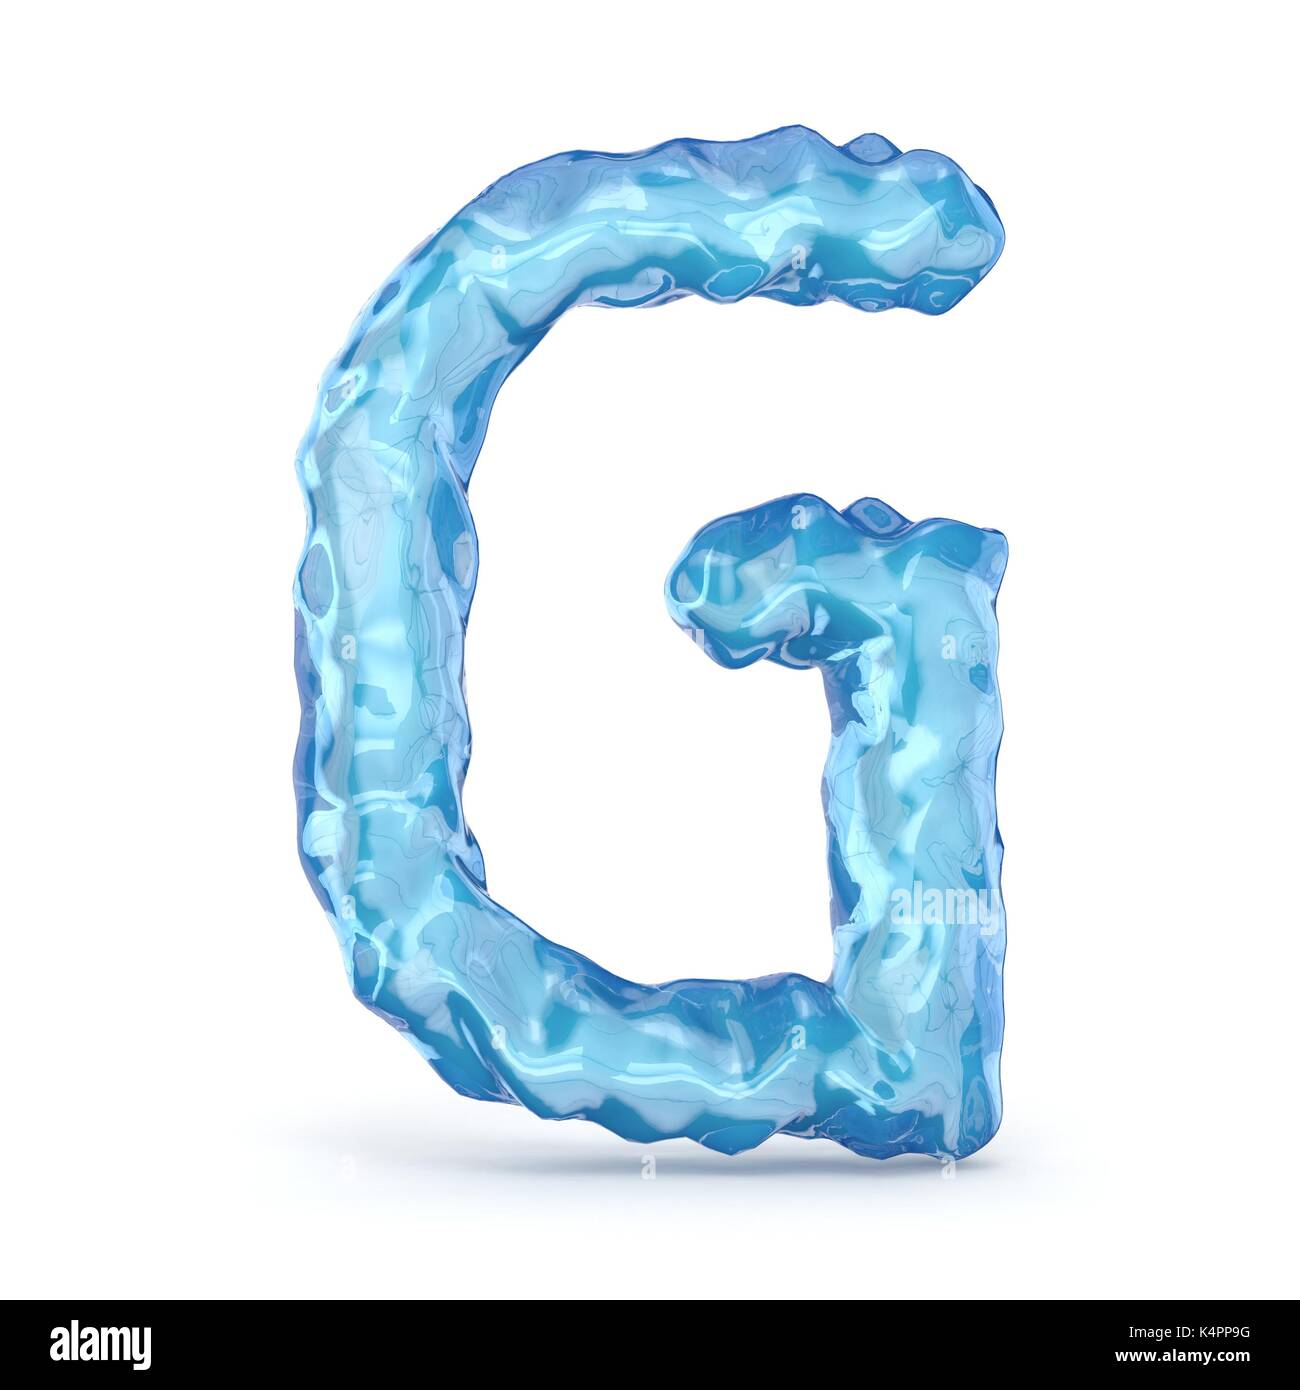 Ice font letter g 3d render illustration isolated on white ice font letter g 3d render illustration isolated on white background altavistaventures Images